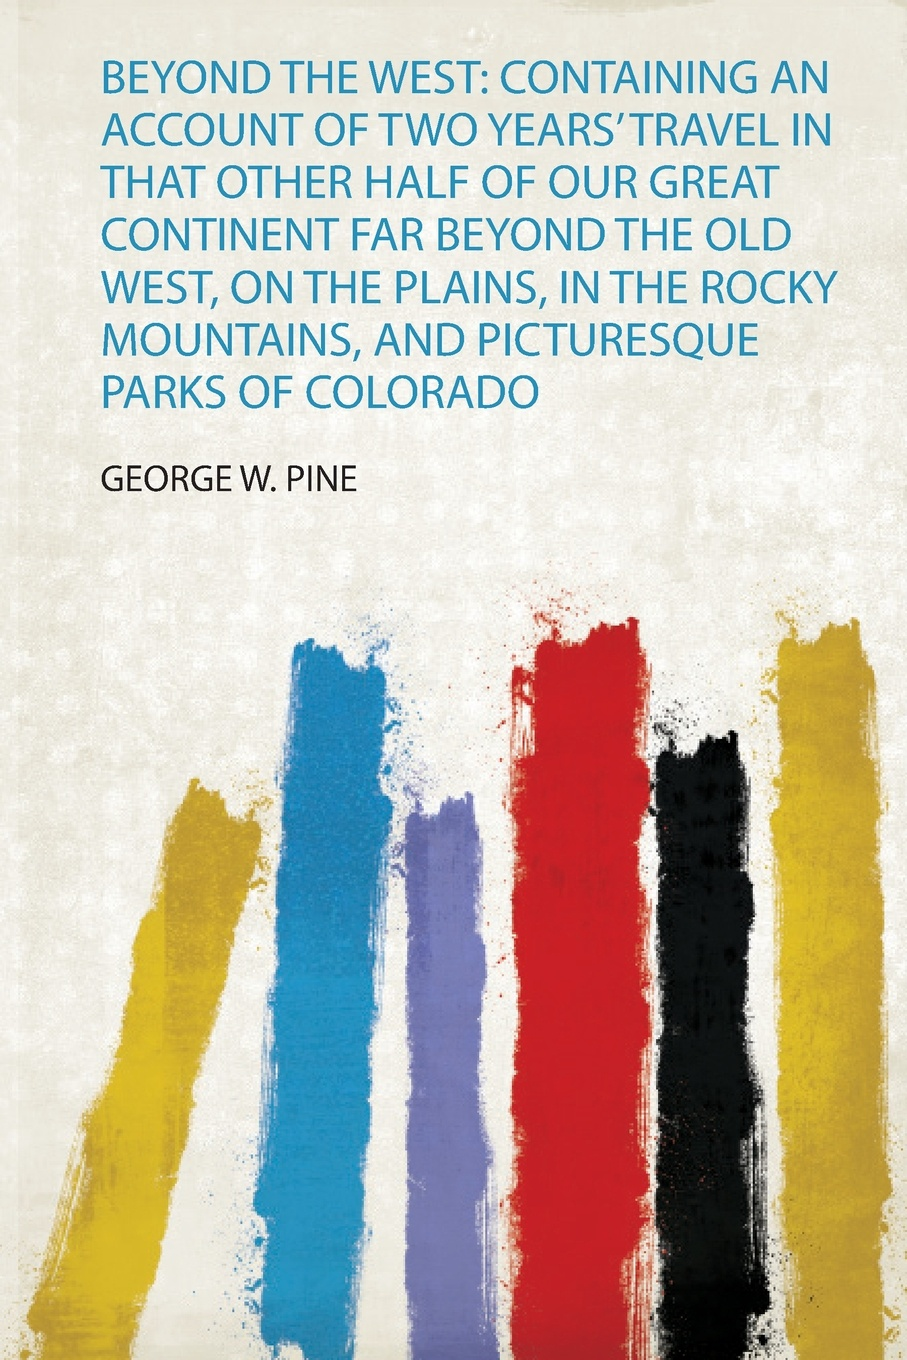 Beyond the West. Containing an Account of Two Years' Travel in That Other Half of Our Great Continent Far Beyond the Old West, on the Plains, in the Rocky Mountains, and Picturesque Parks of Colorado